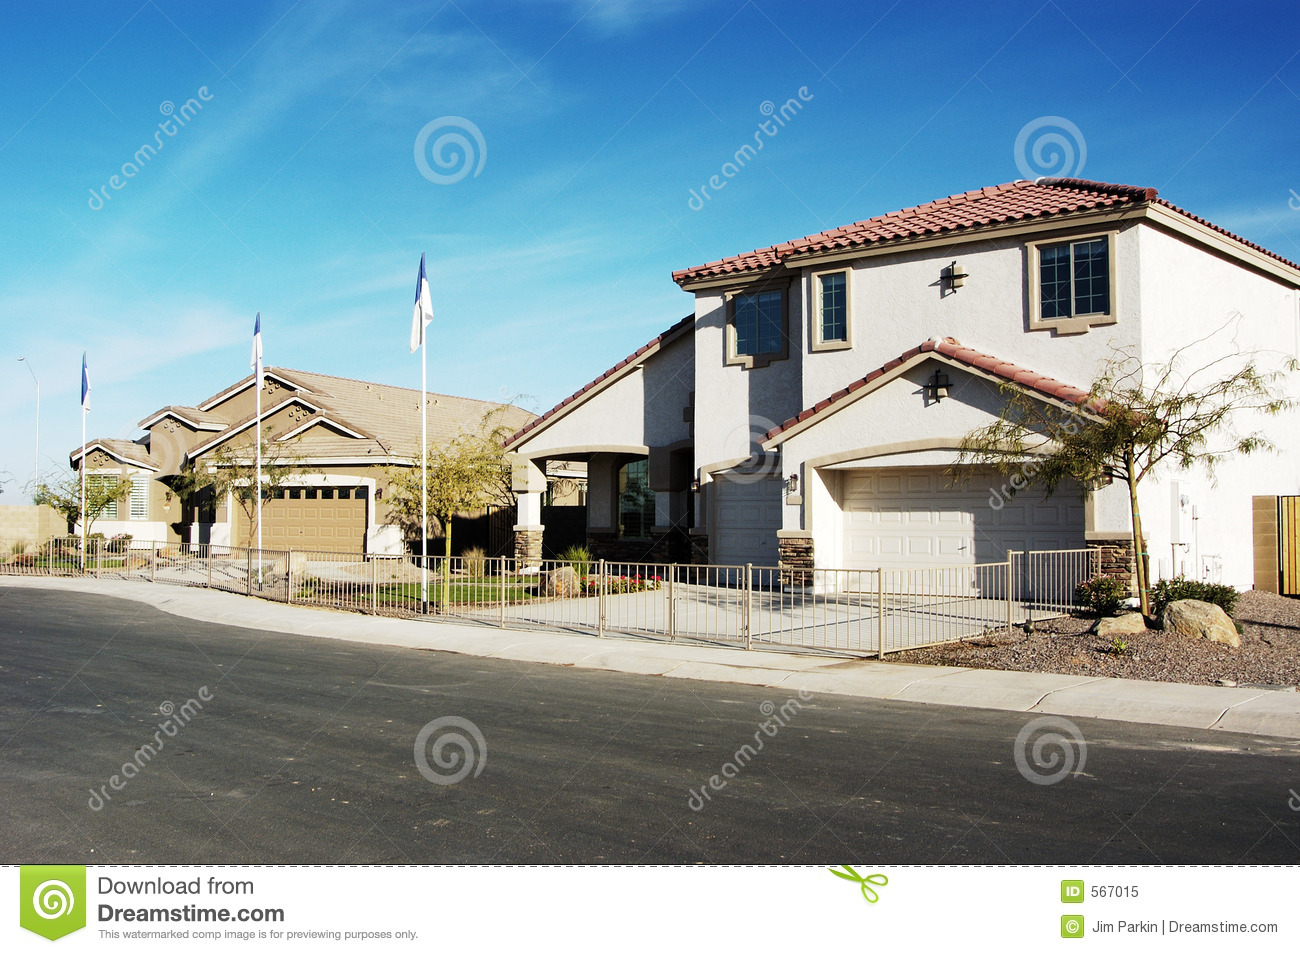 New model homes stock image image of models southwest for Modern model homes